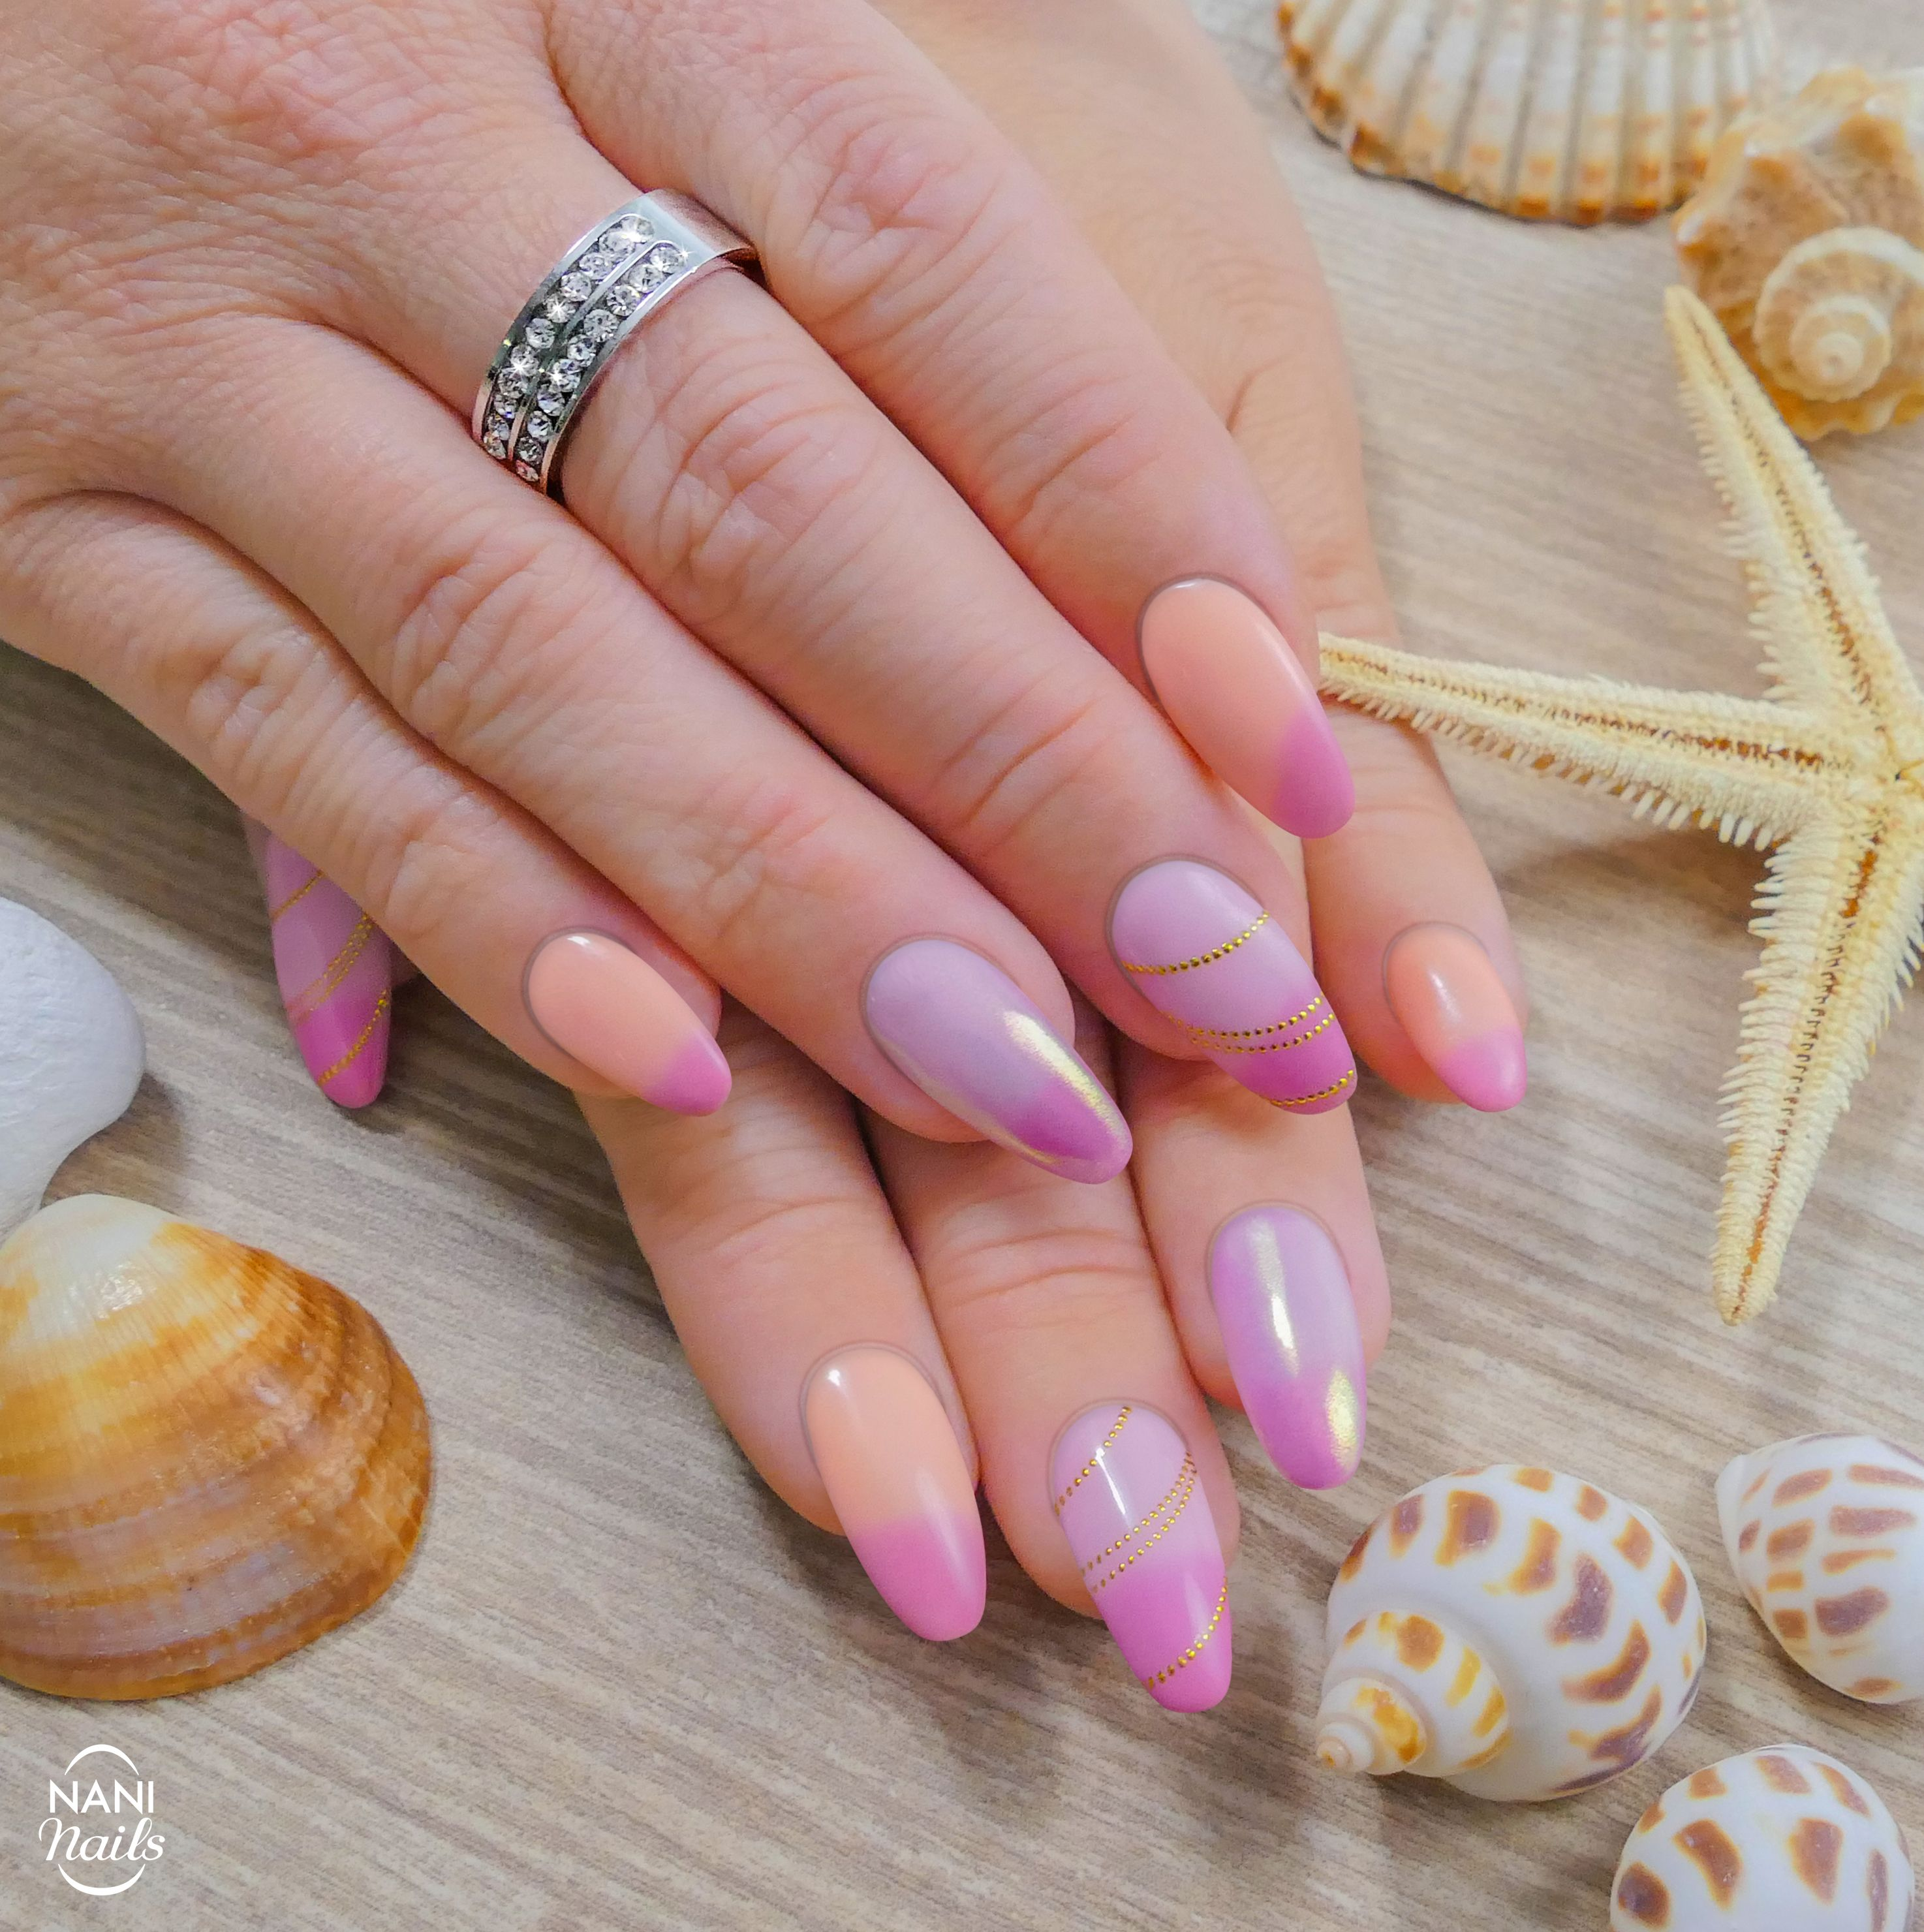 Ever Heard About Thermo Gel Polishes They Are So Satisfying To Watch When Changing Colors 3 Nails Manicure Colors Gelpoli Nails Nail Designs Manicure